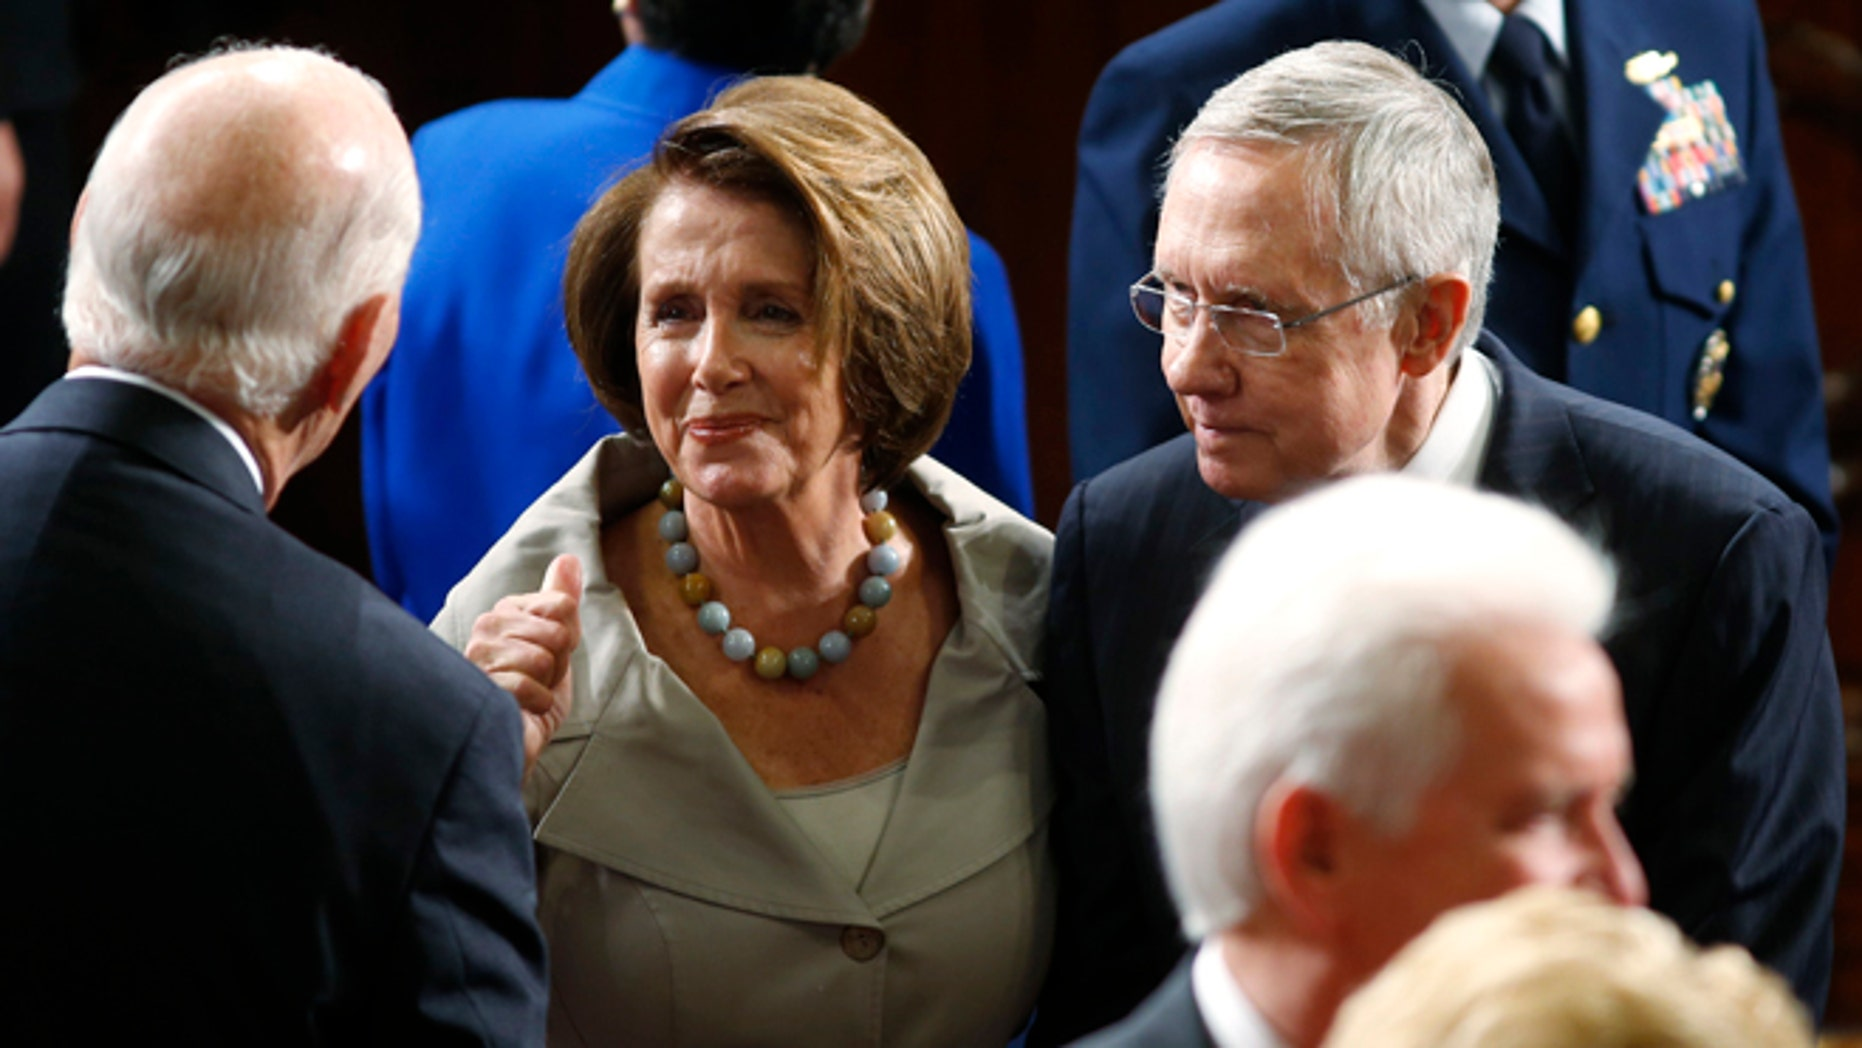 In this Sept. 18, 2014 photo, House Minority Leader Nancy Pelosi, D-Calif., and U.S. Senate Majority Leader Harry Reid, D-Nev., shown entering the House chamber on Capitol Hill in Washington.